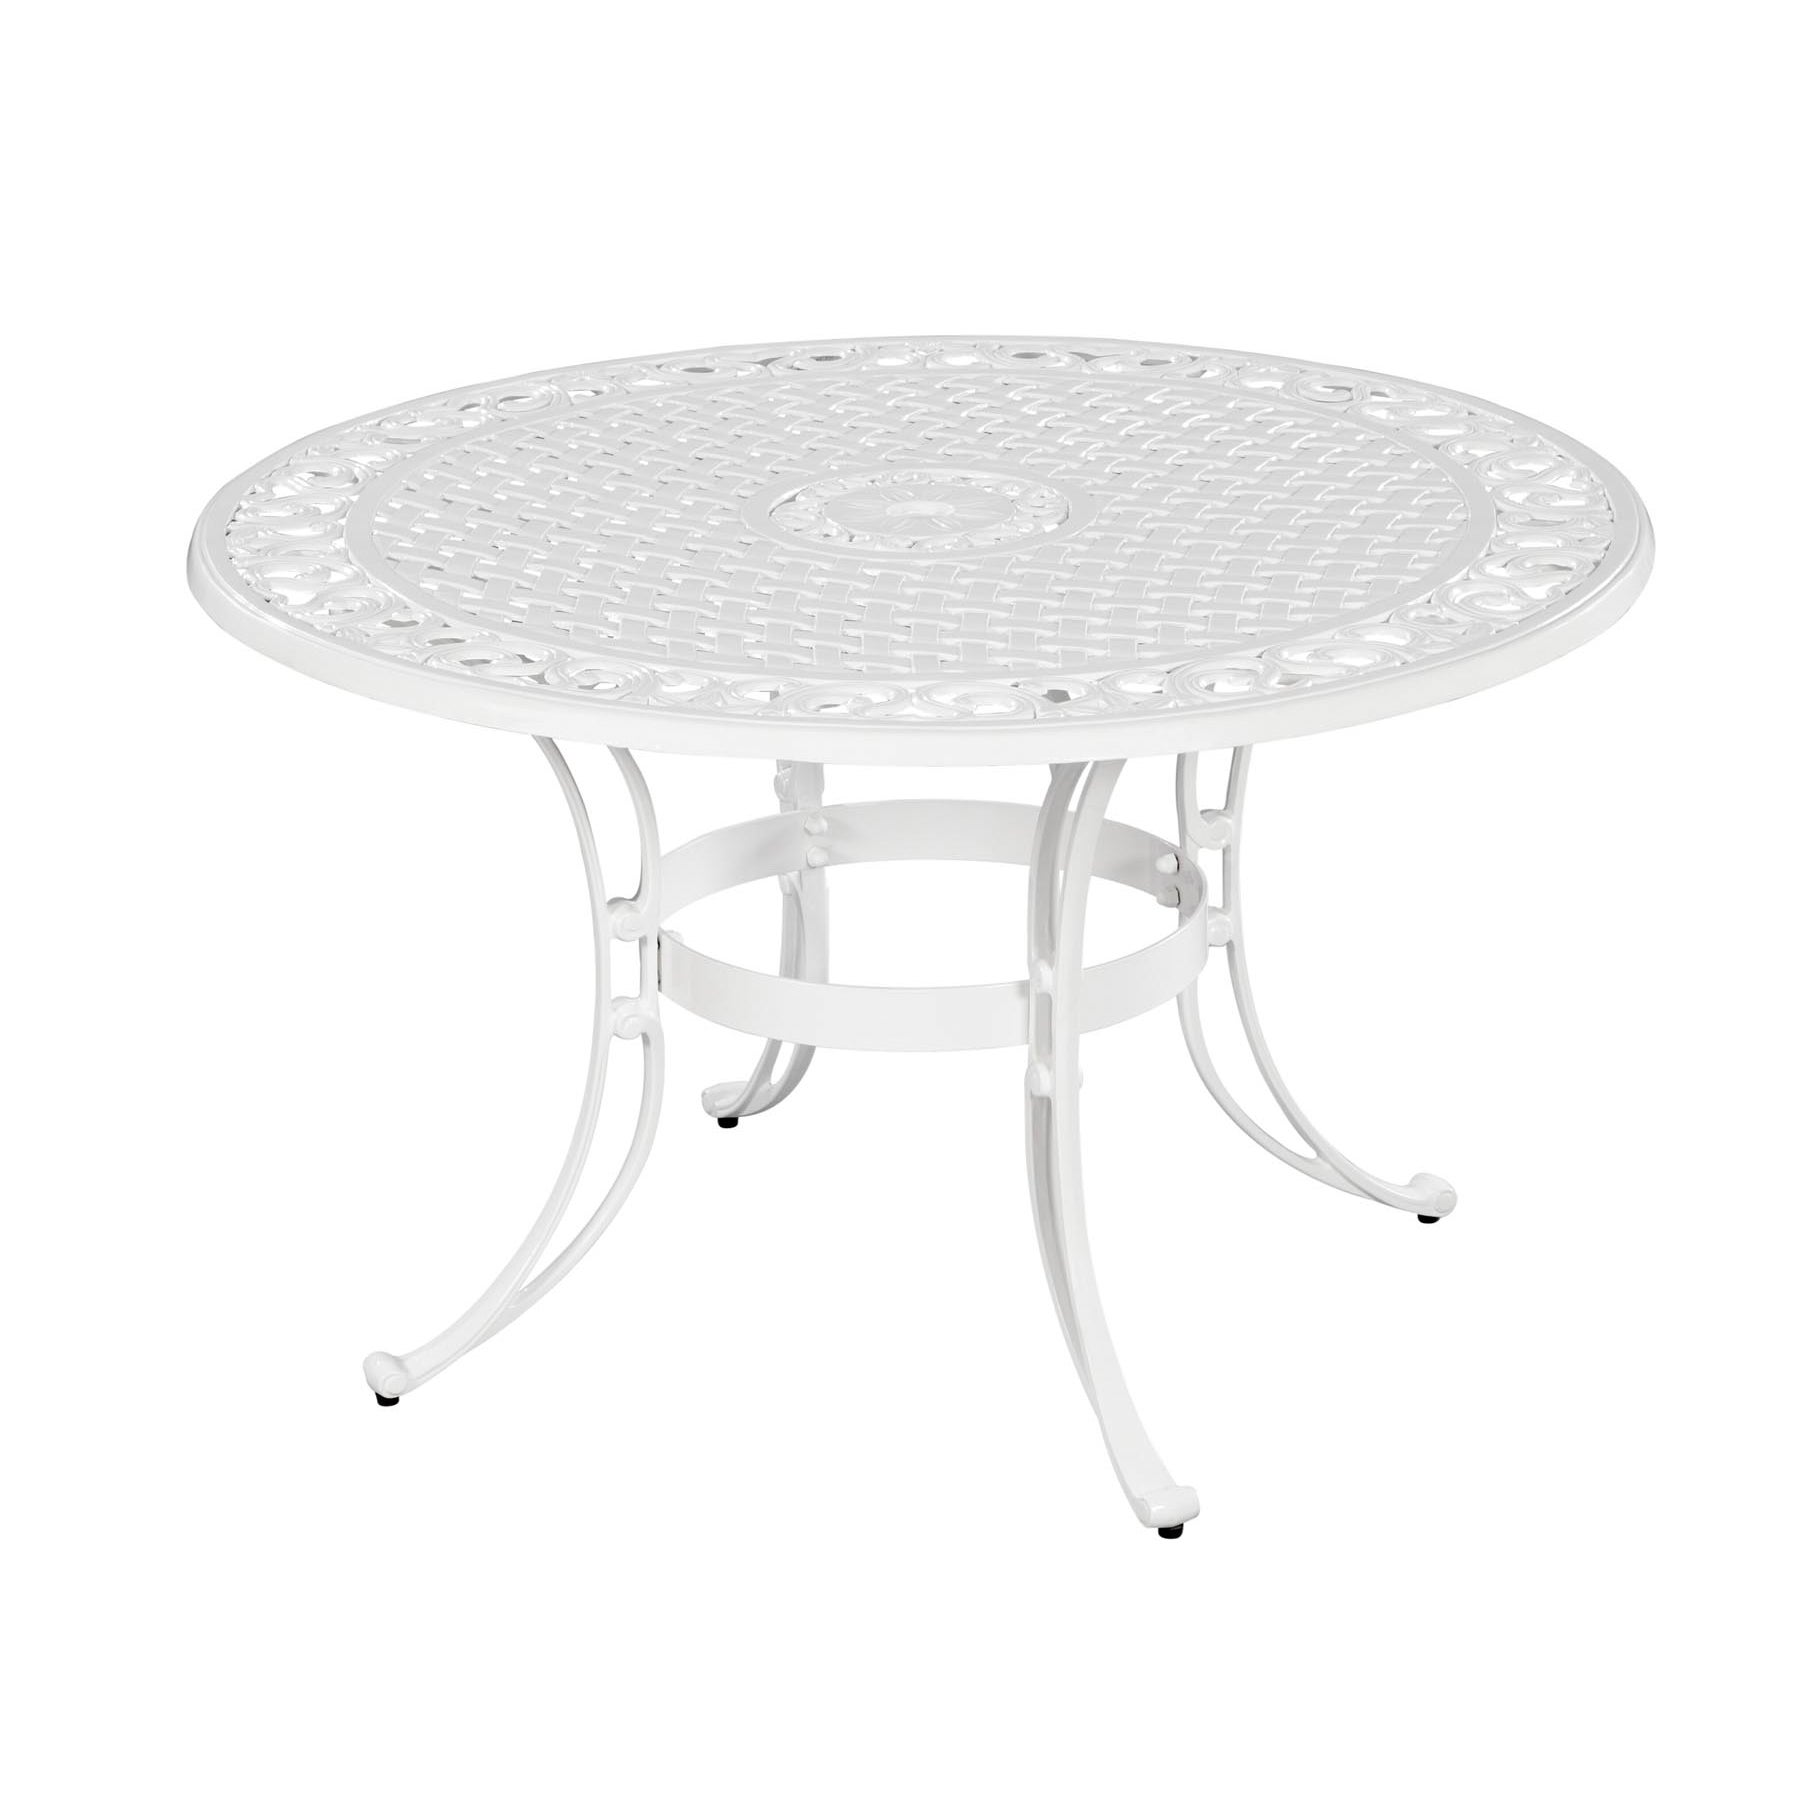 Biscayne cast aluminum white 42 inch outdoor dining table for White metal outdoor dining table